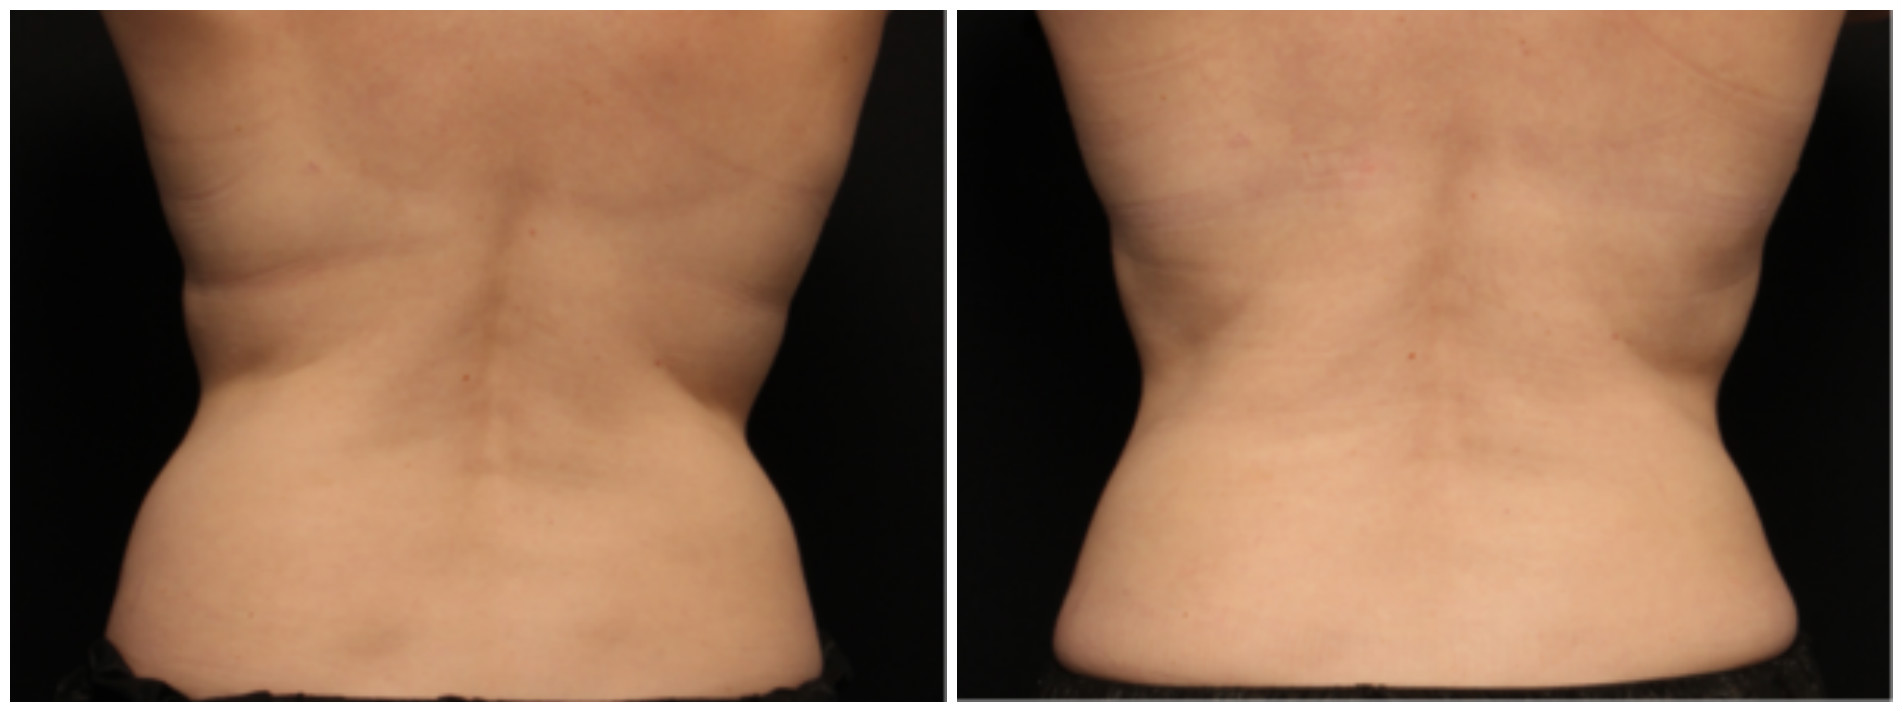 coolsculpting, before and after - back view